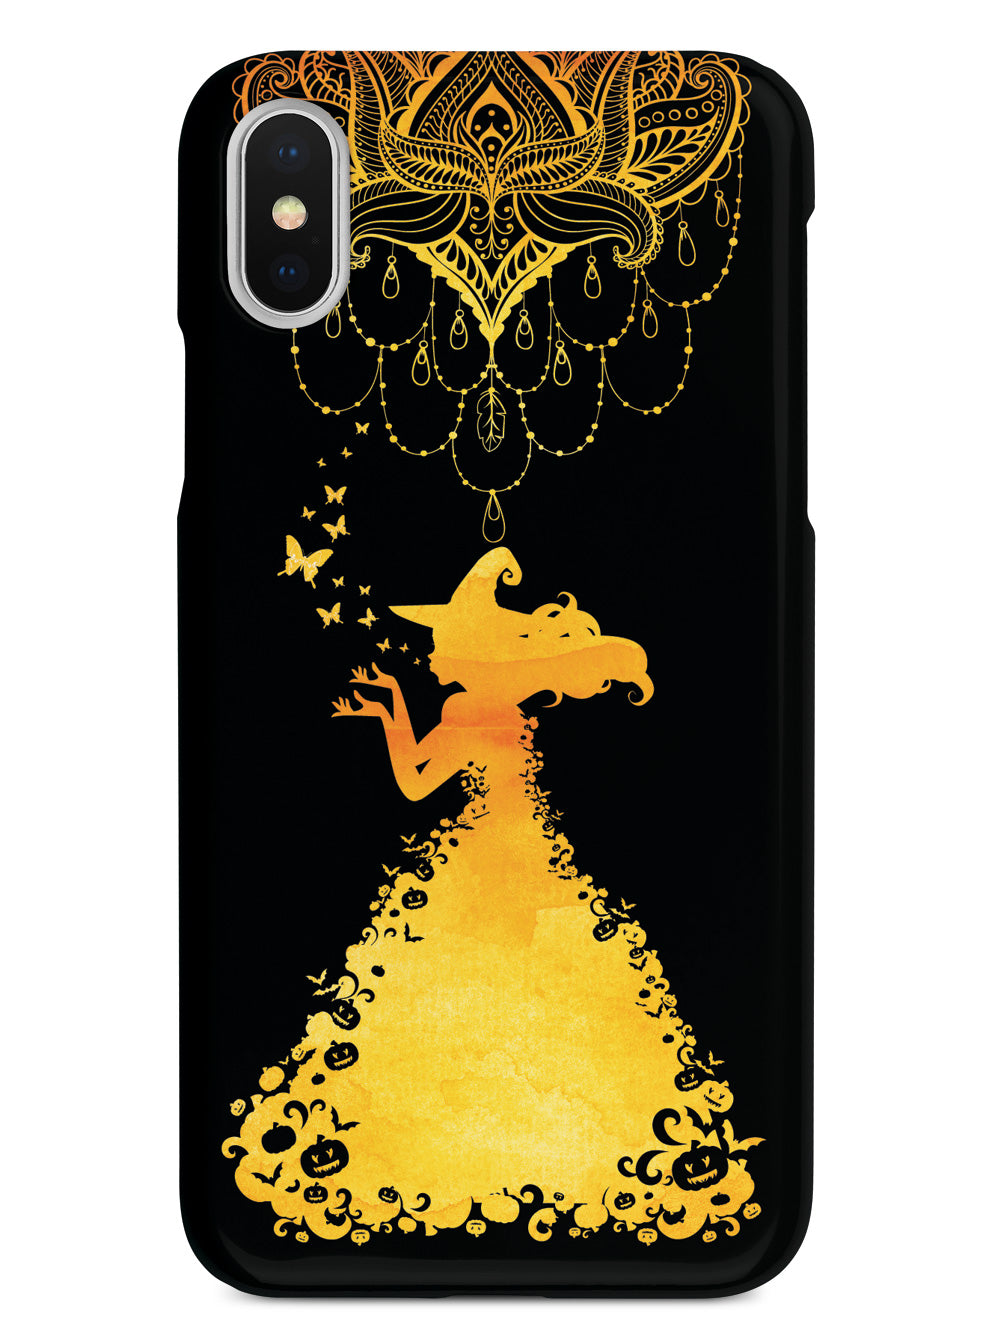 Princess Witch - Chandelier - Black Case